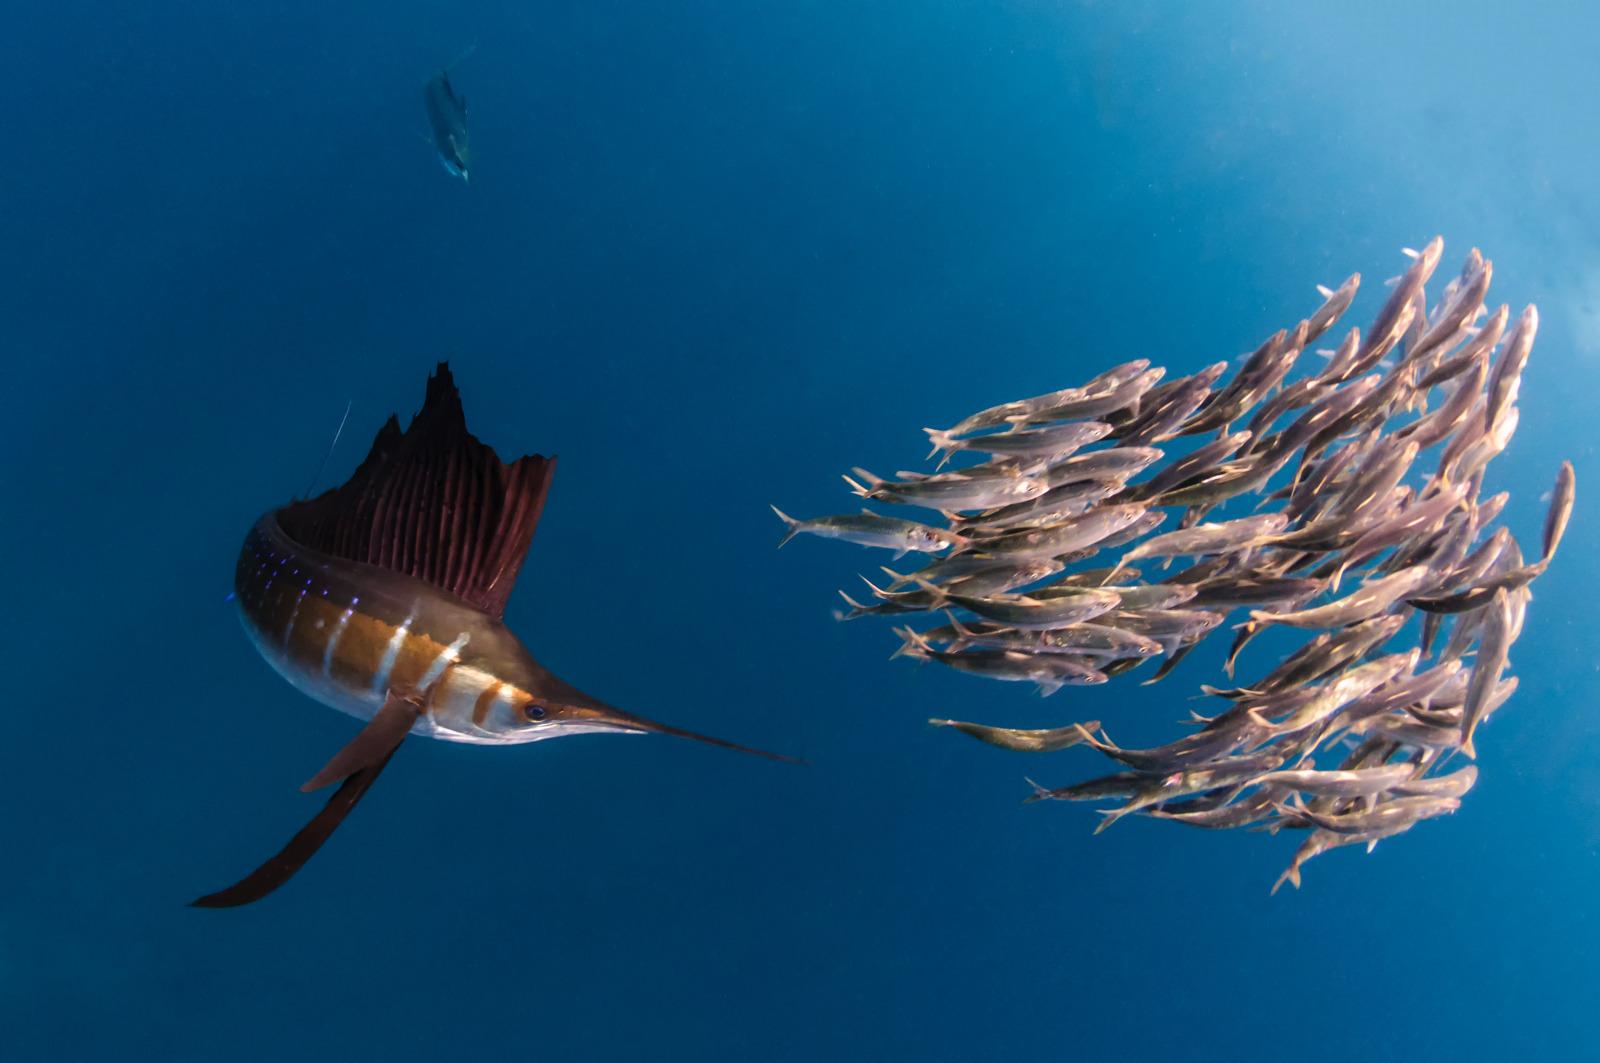 A sailfish hunting a group of sardines off the coast of Mexico